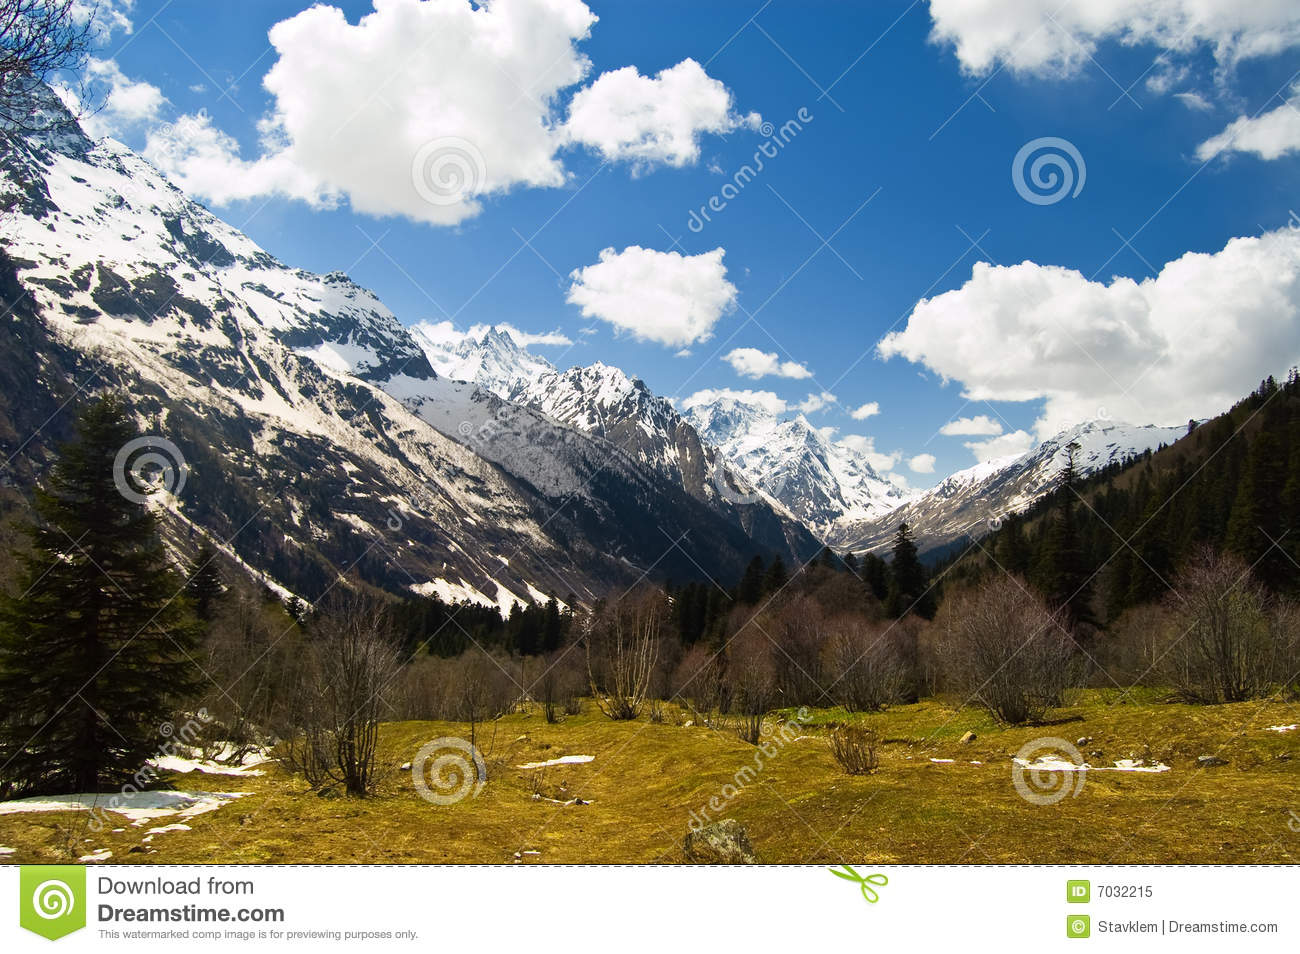 Abstract Mountain Background Royalty Free Stock Photo   Image  7032215